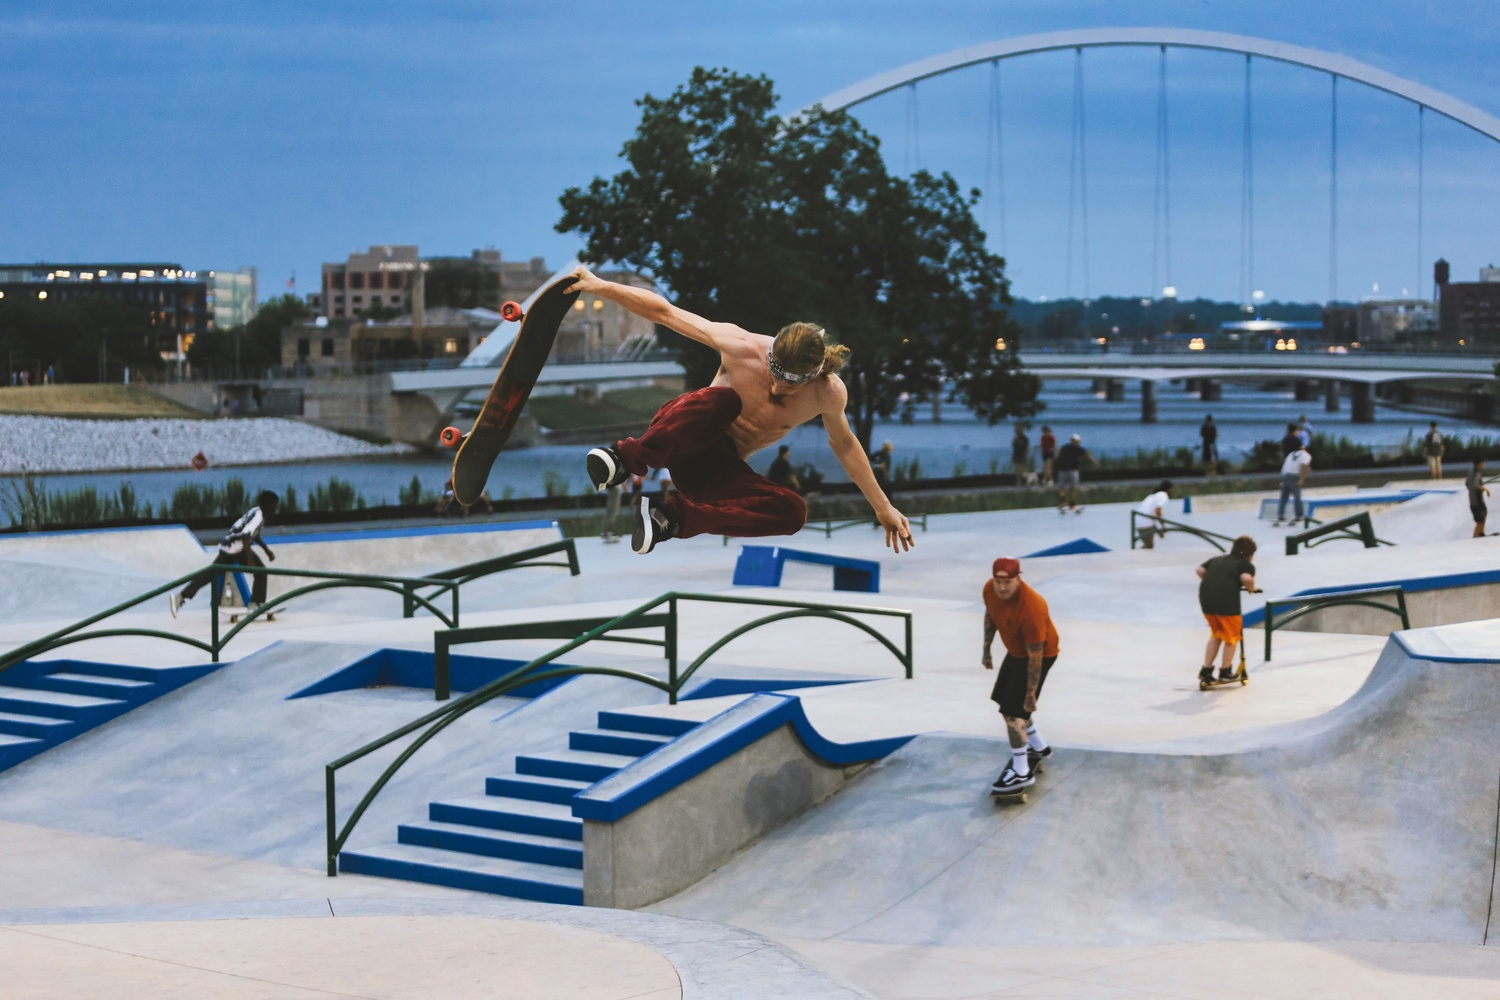 Shred by Chris Manning